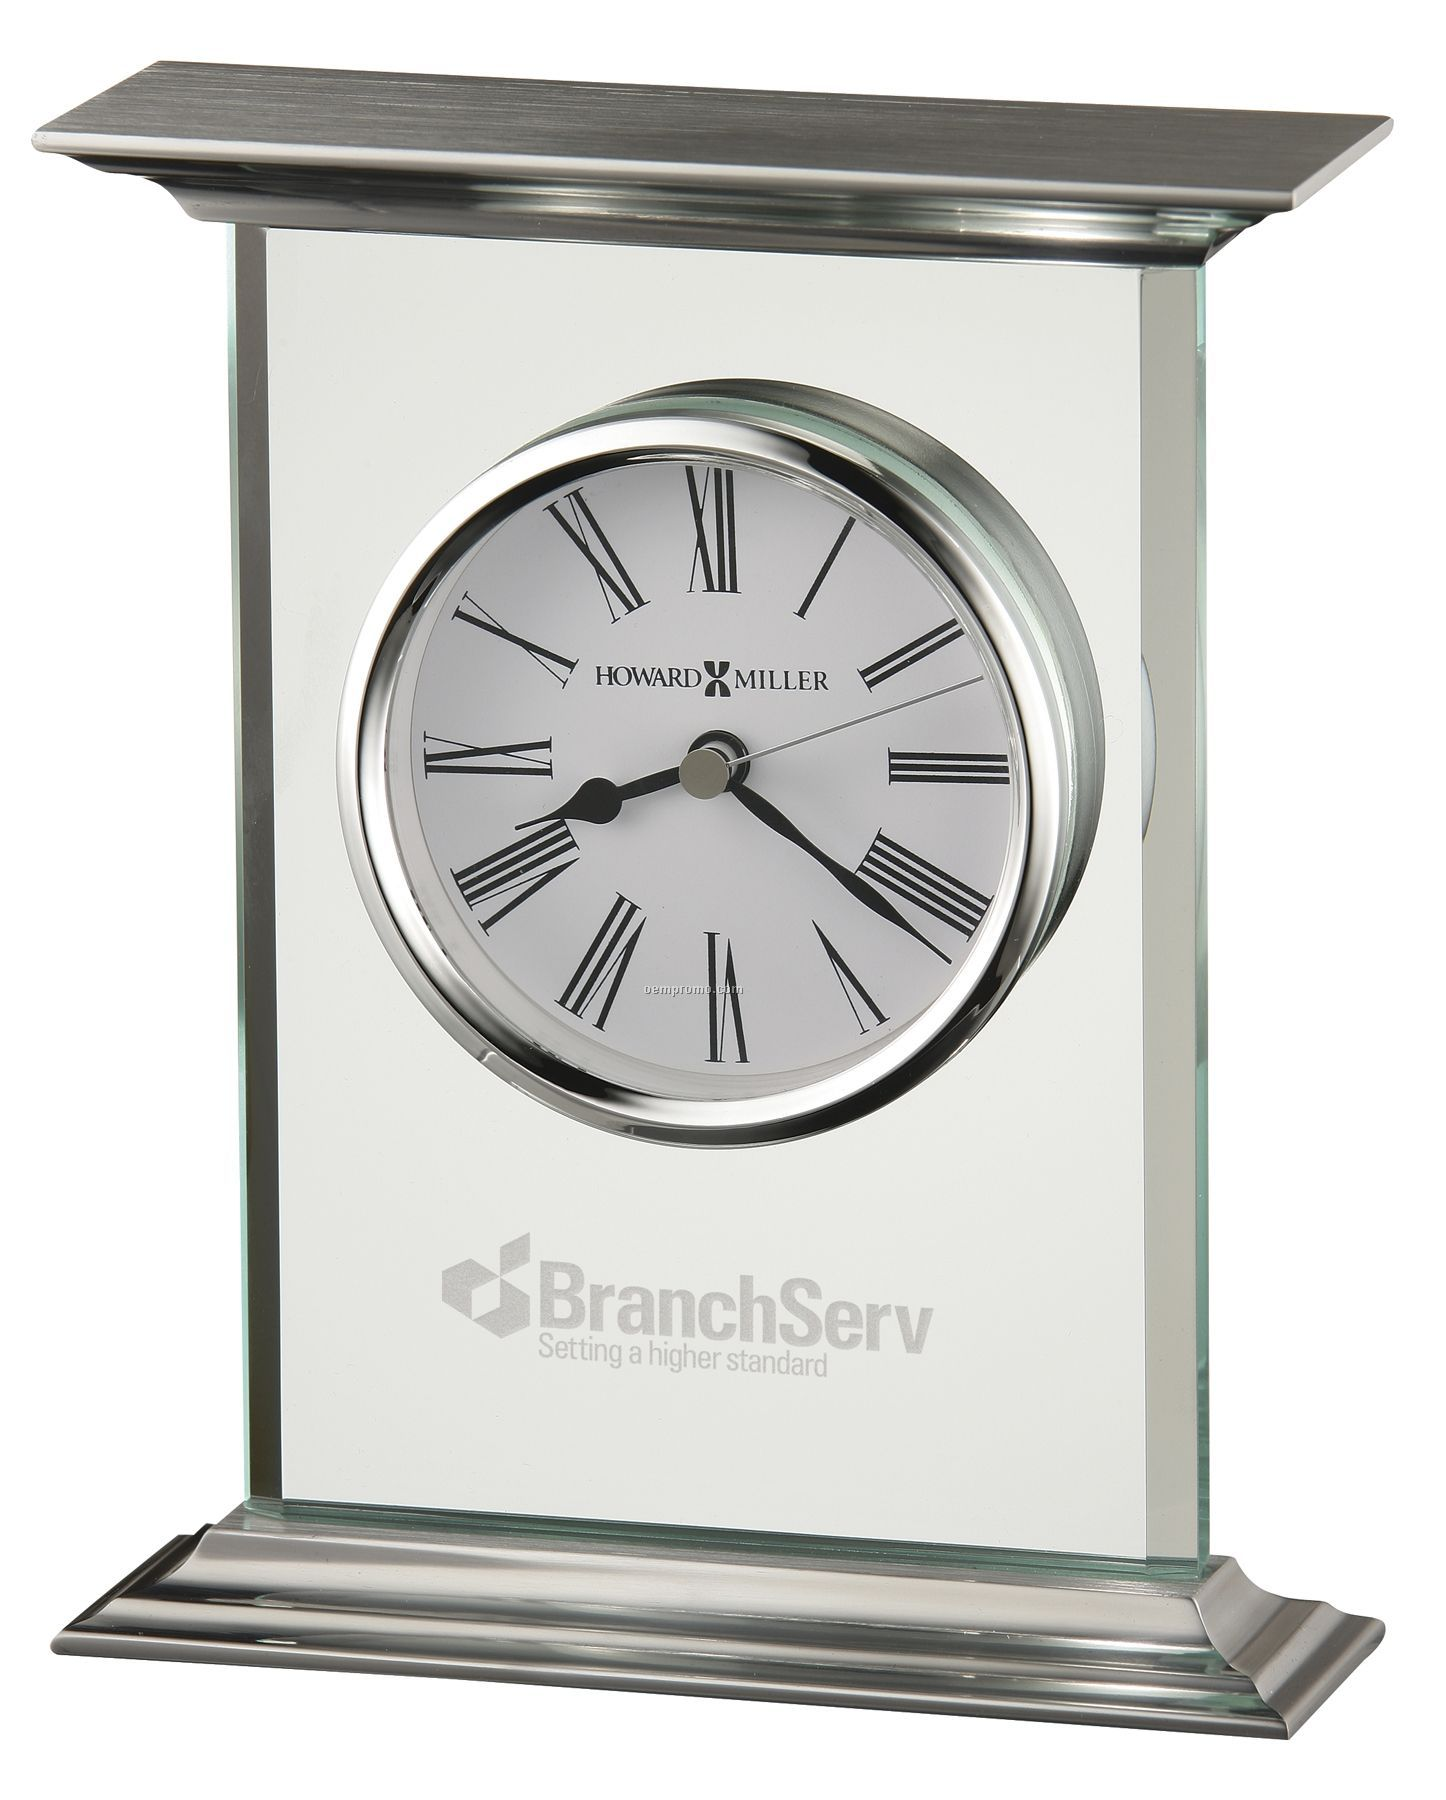 Howard Miller Clifton Corporate Gift Clock (Blank)